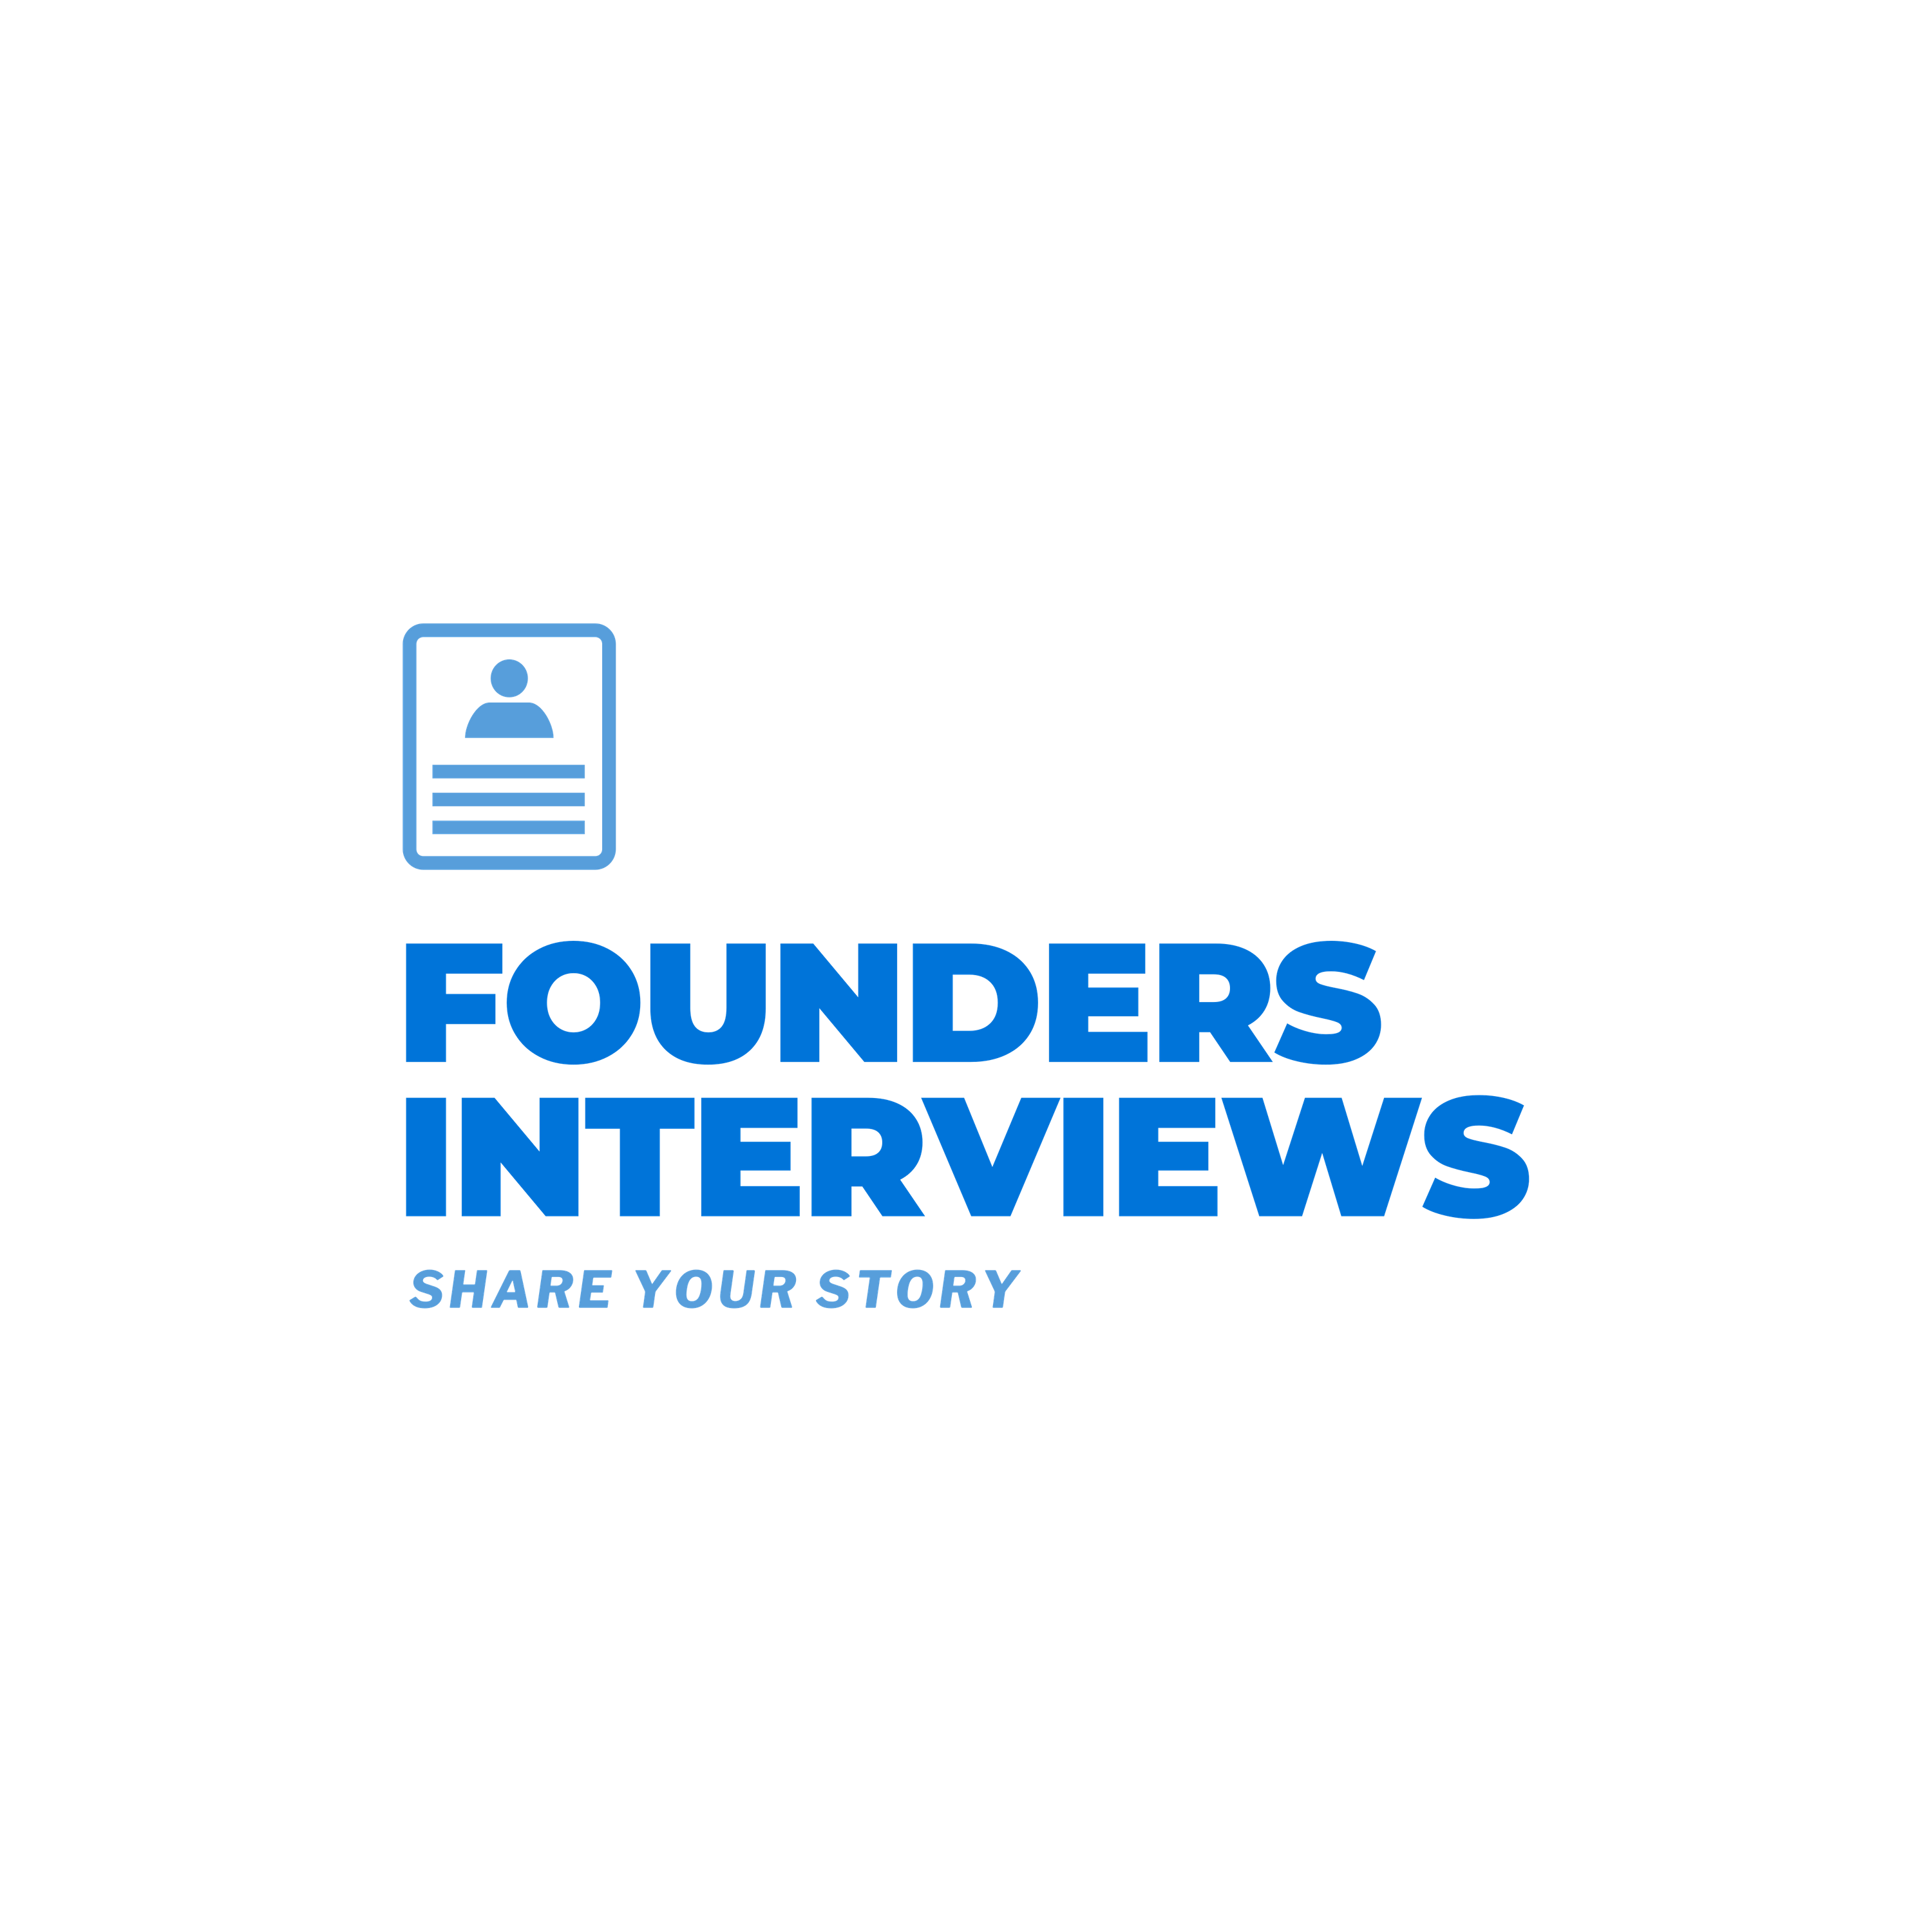 Founders Interviews